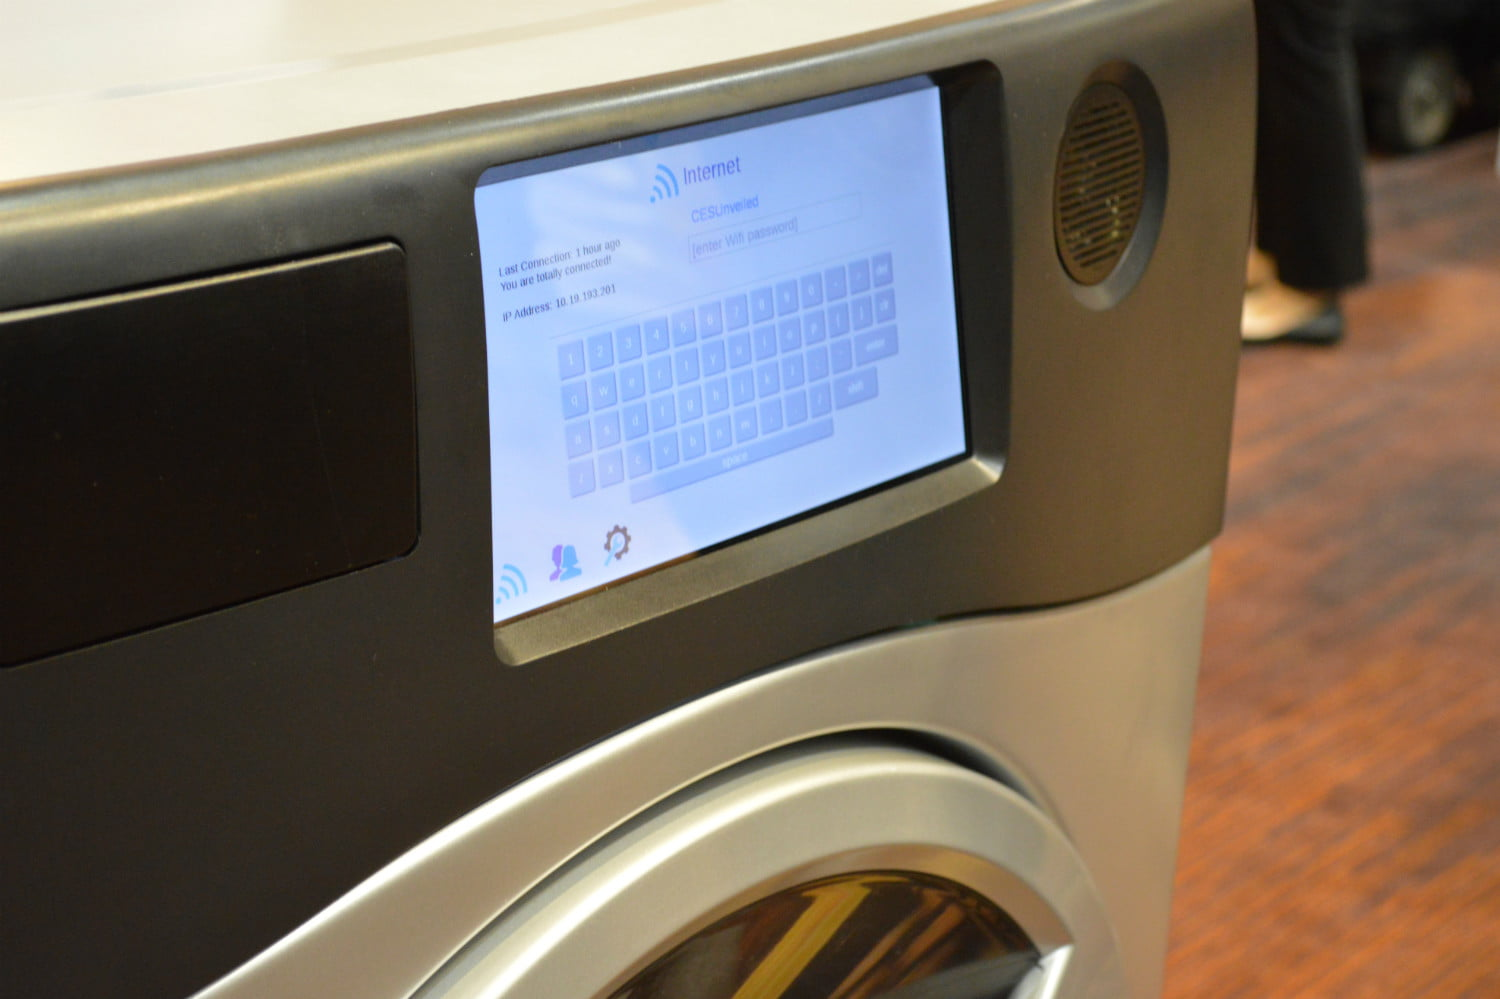 the marathon laundry machine is a washer and dryer in one 6